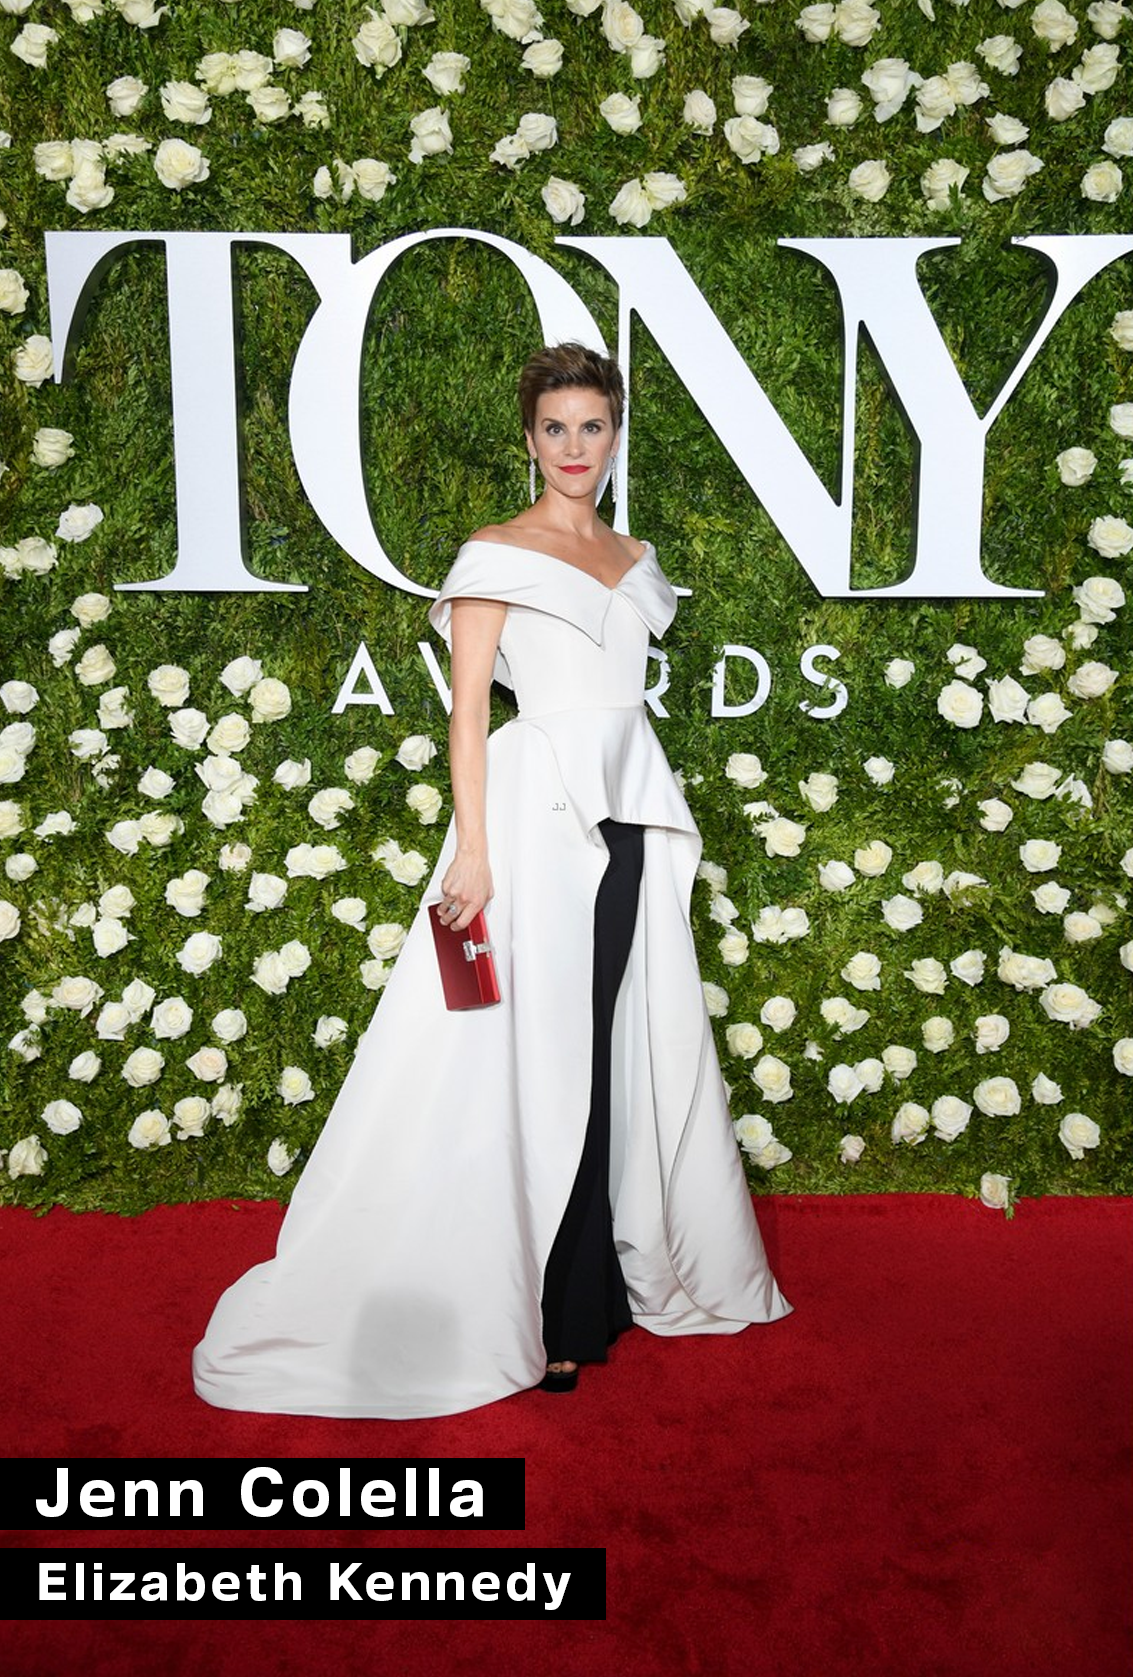 Tony Awards 2017 Top 5 Looks 5